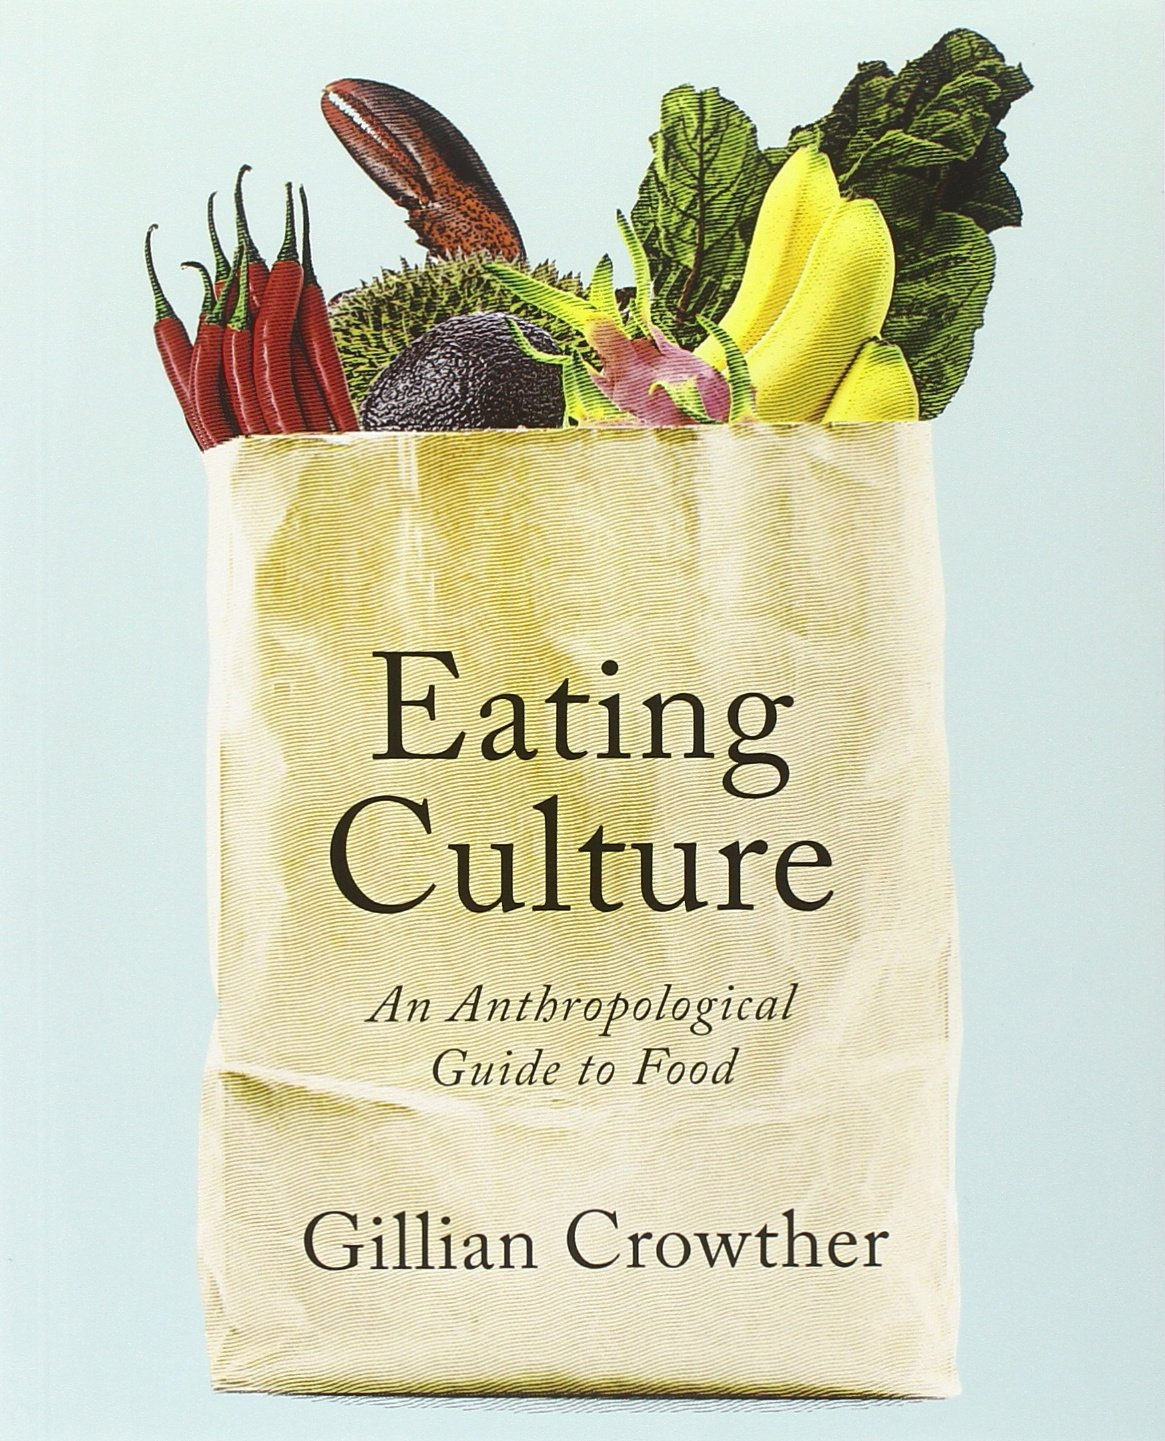 Eating culture an anthropological guide to food gillian crowther eating culture an anthropological guide to food gillian crowther 9781442604650 amazon books fandeluxe Gallery